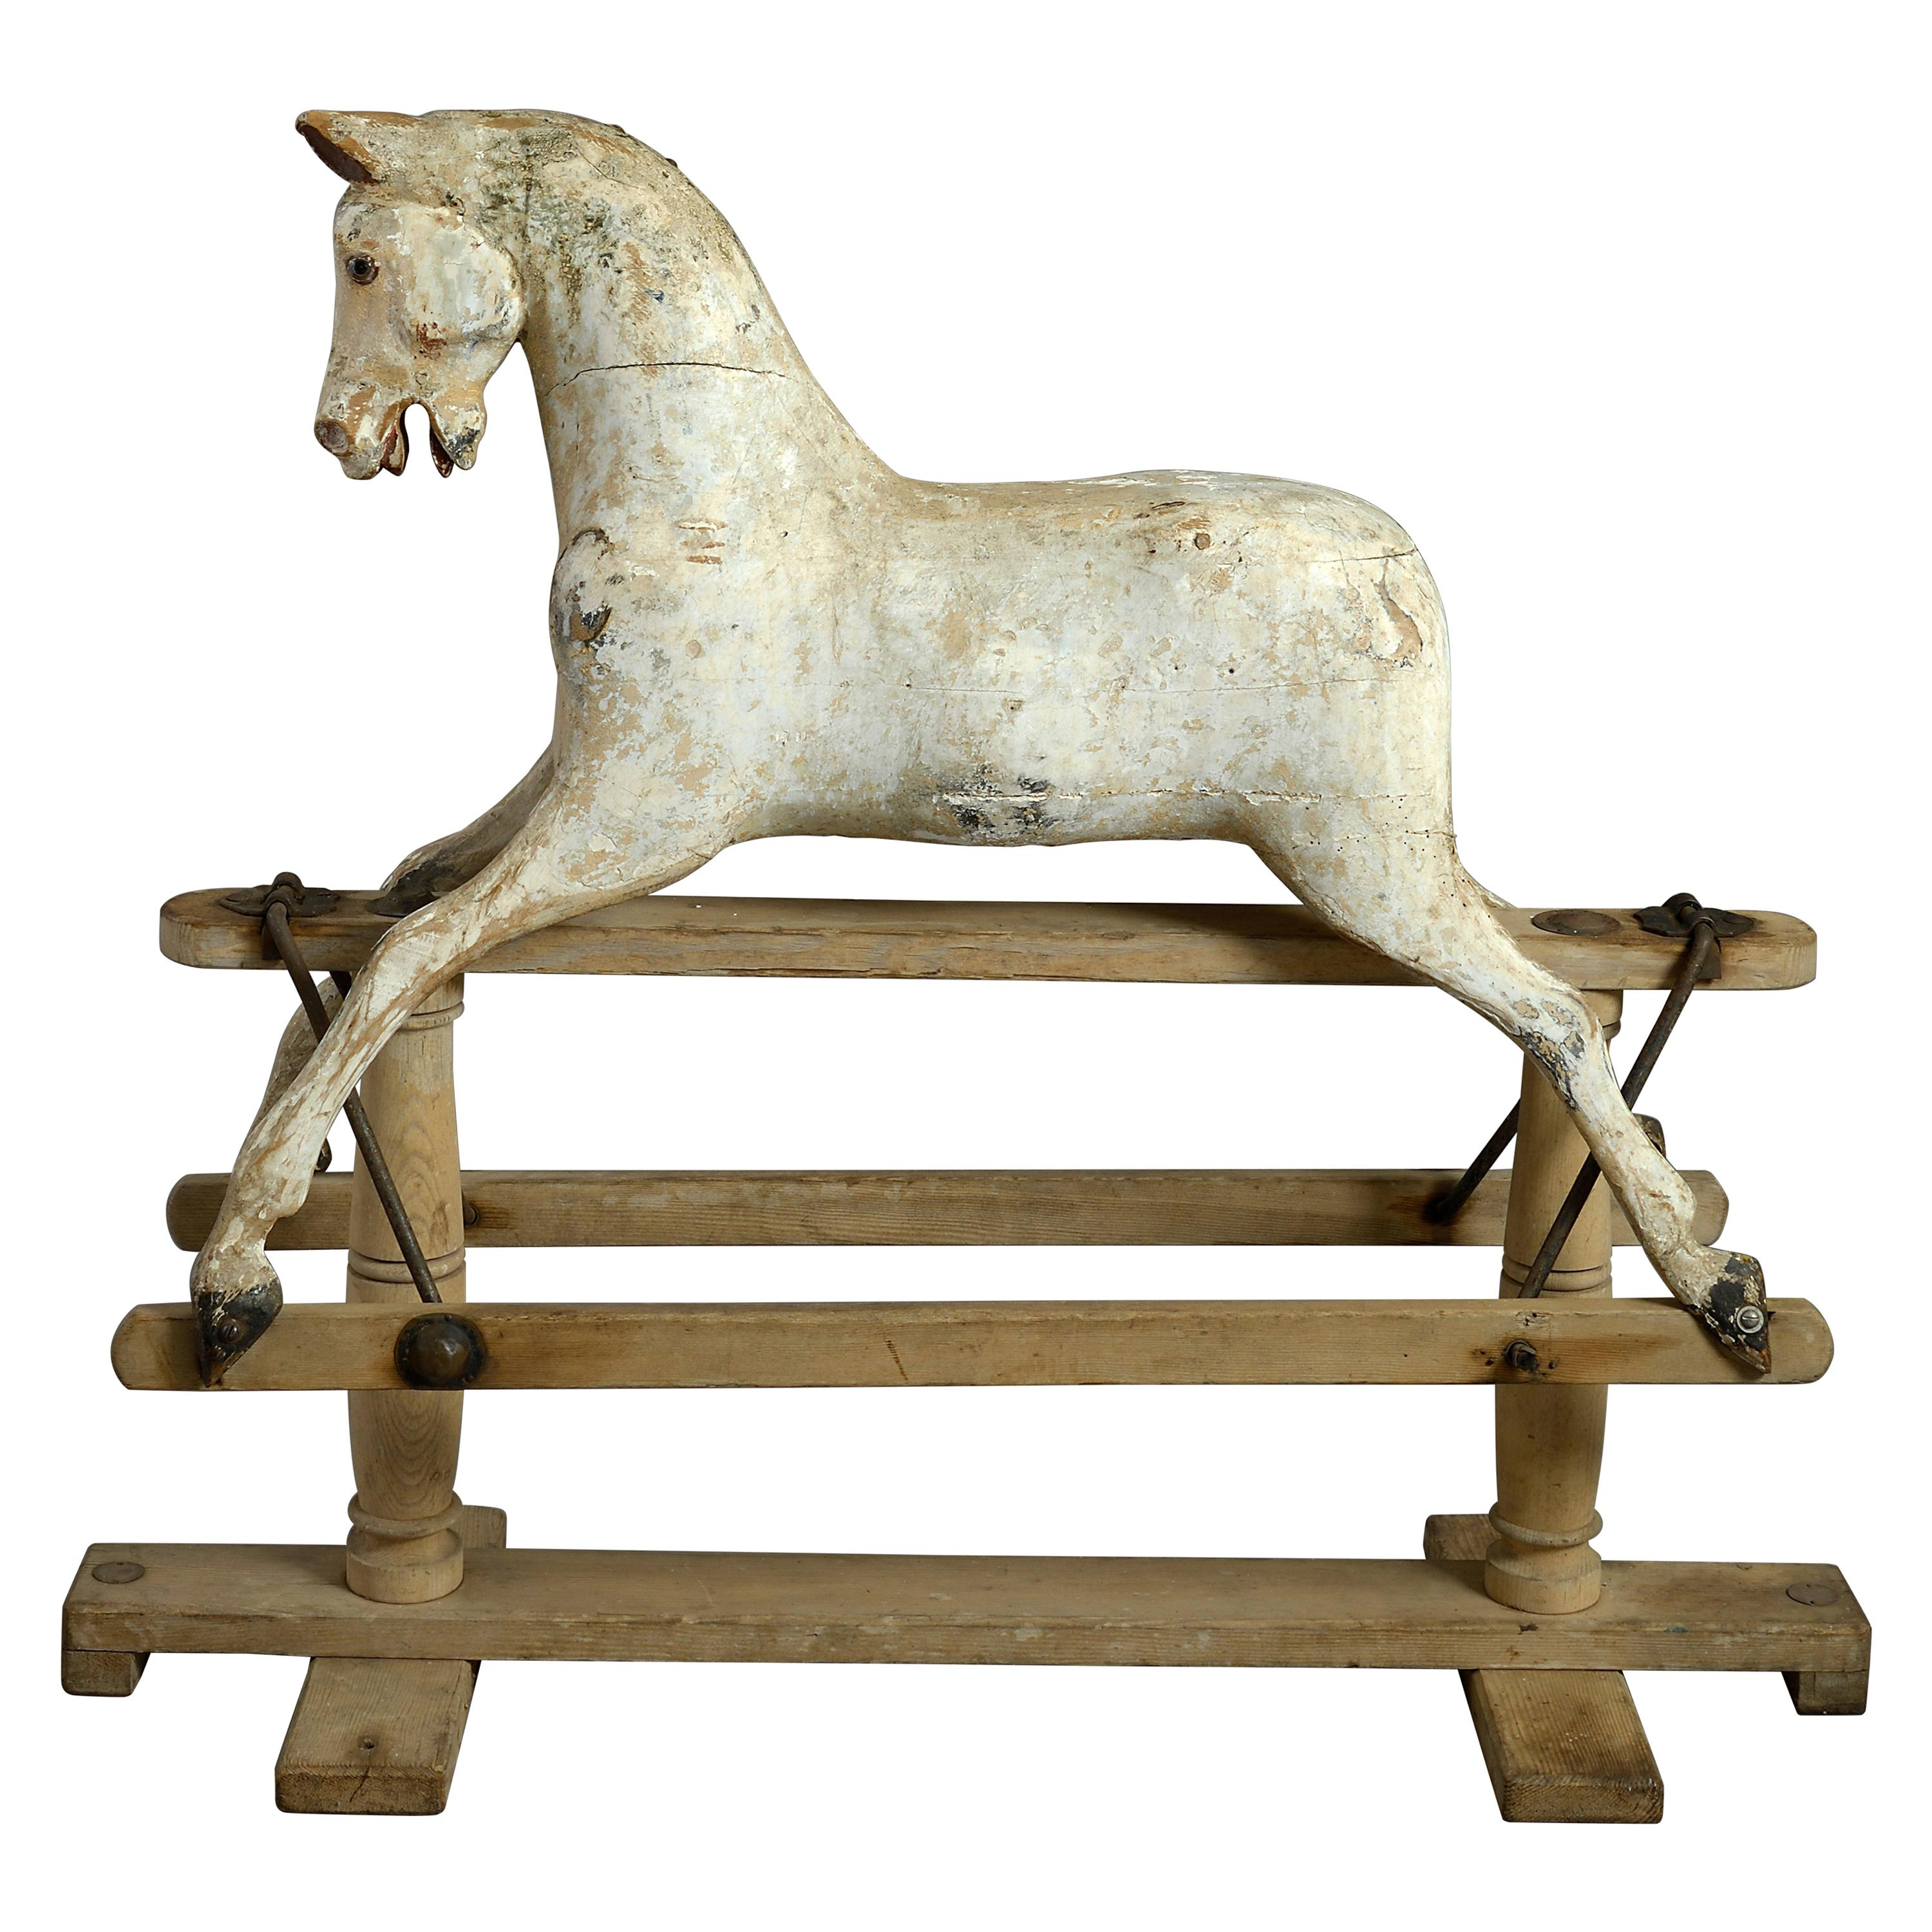 19th Century Carved Painted Rocking Horse